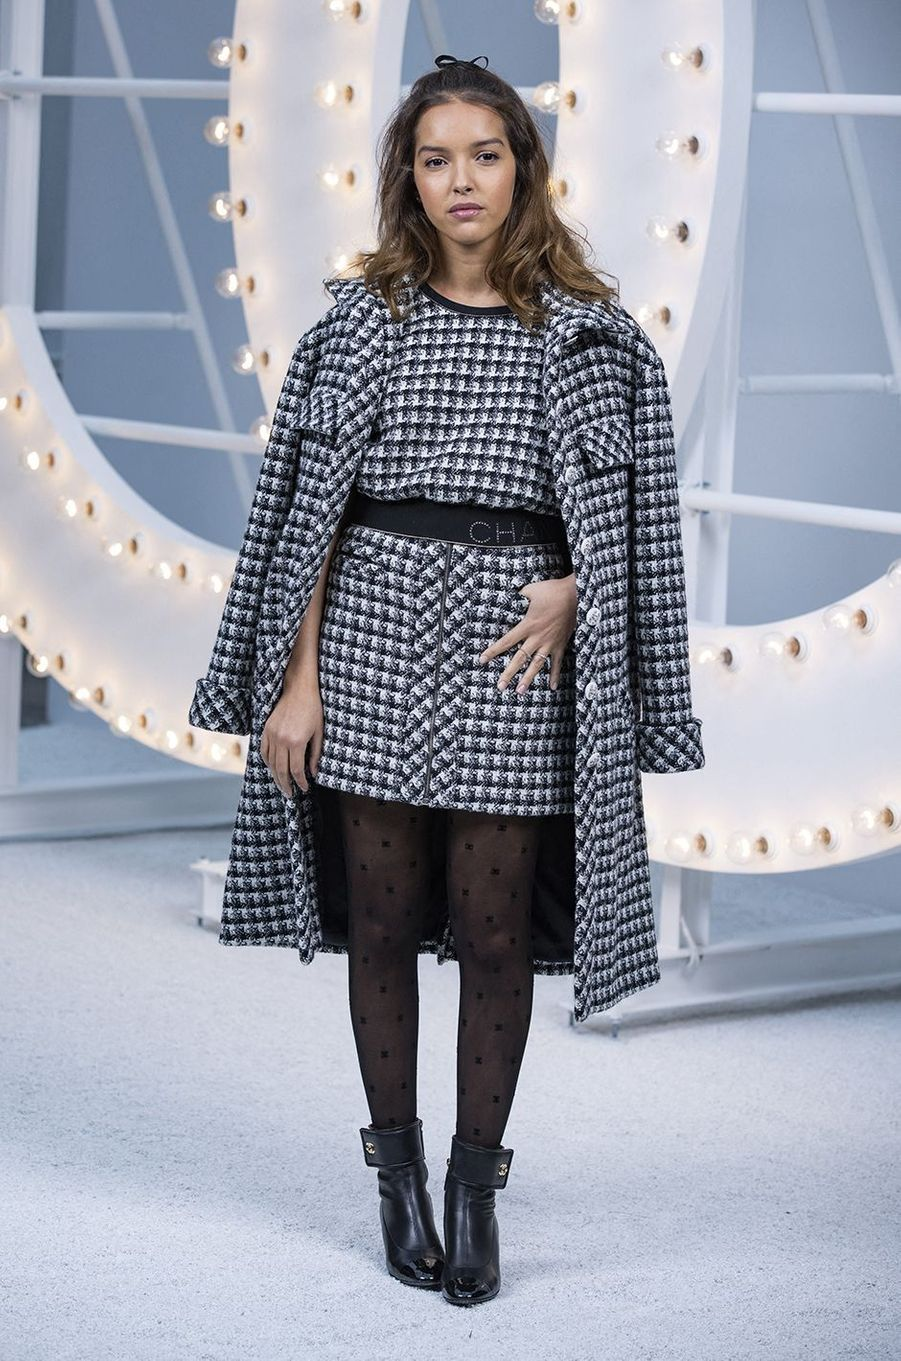 Lyna Khoudri au défilé Chanel lors de la Fashion Week à Paris le 6 octobre 2020